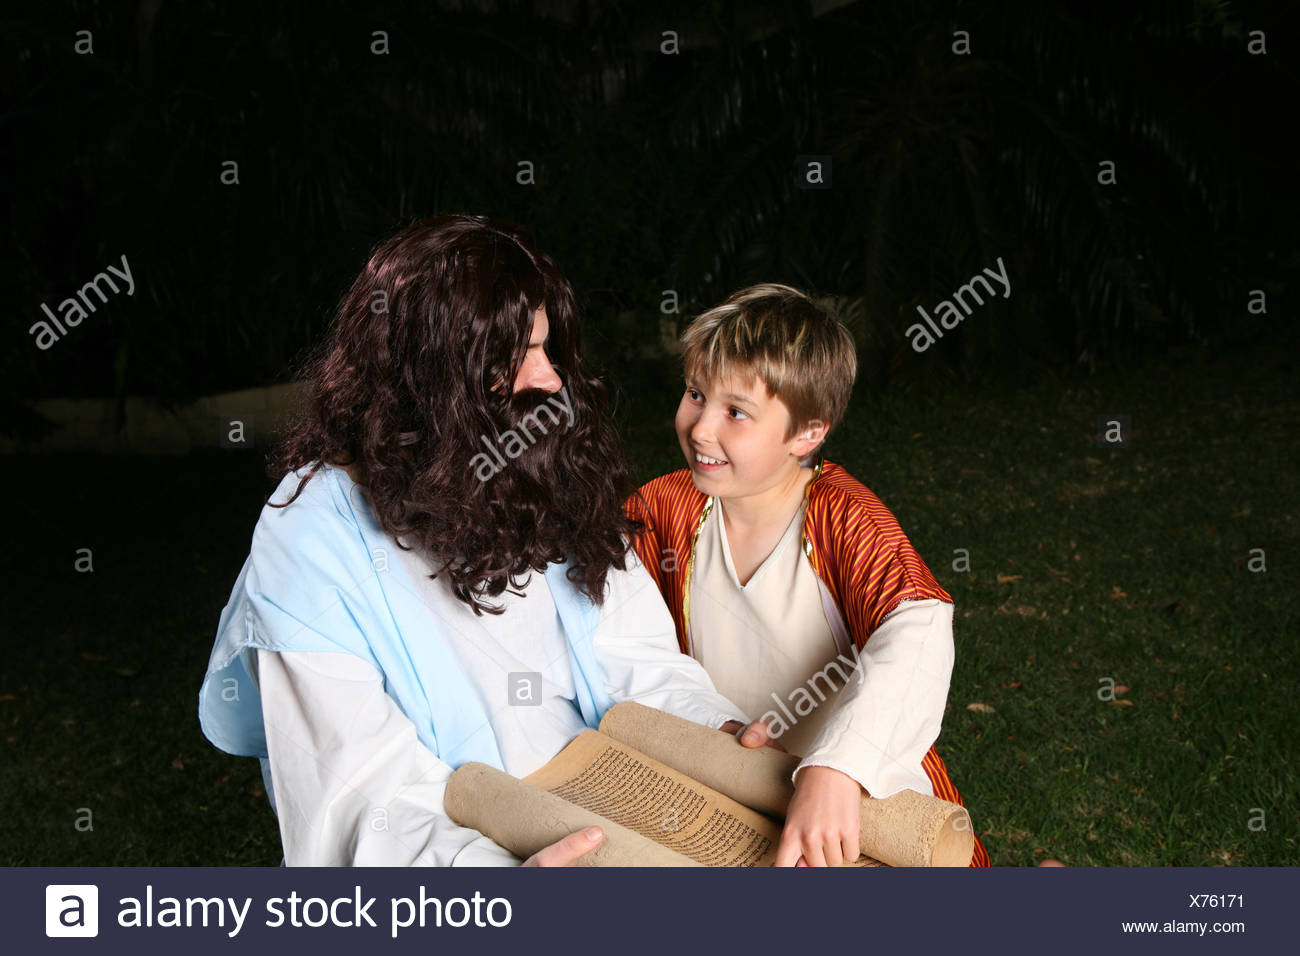 Learning the scriptures - Stock Image